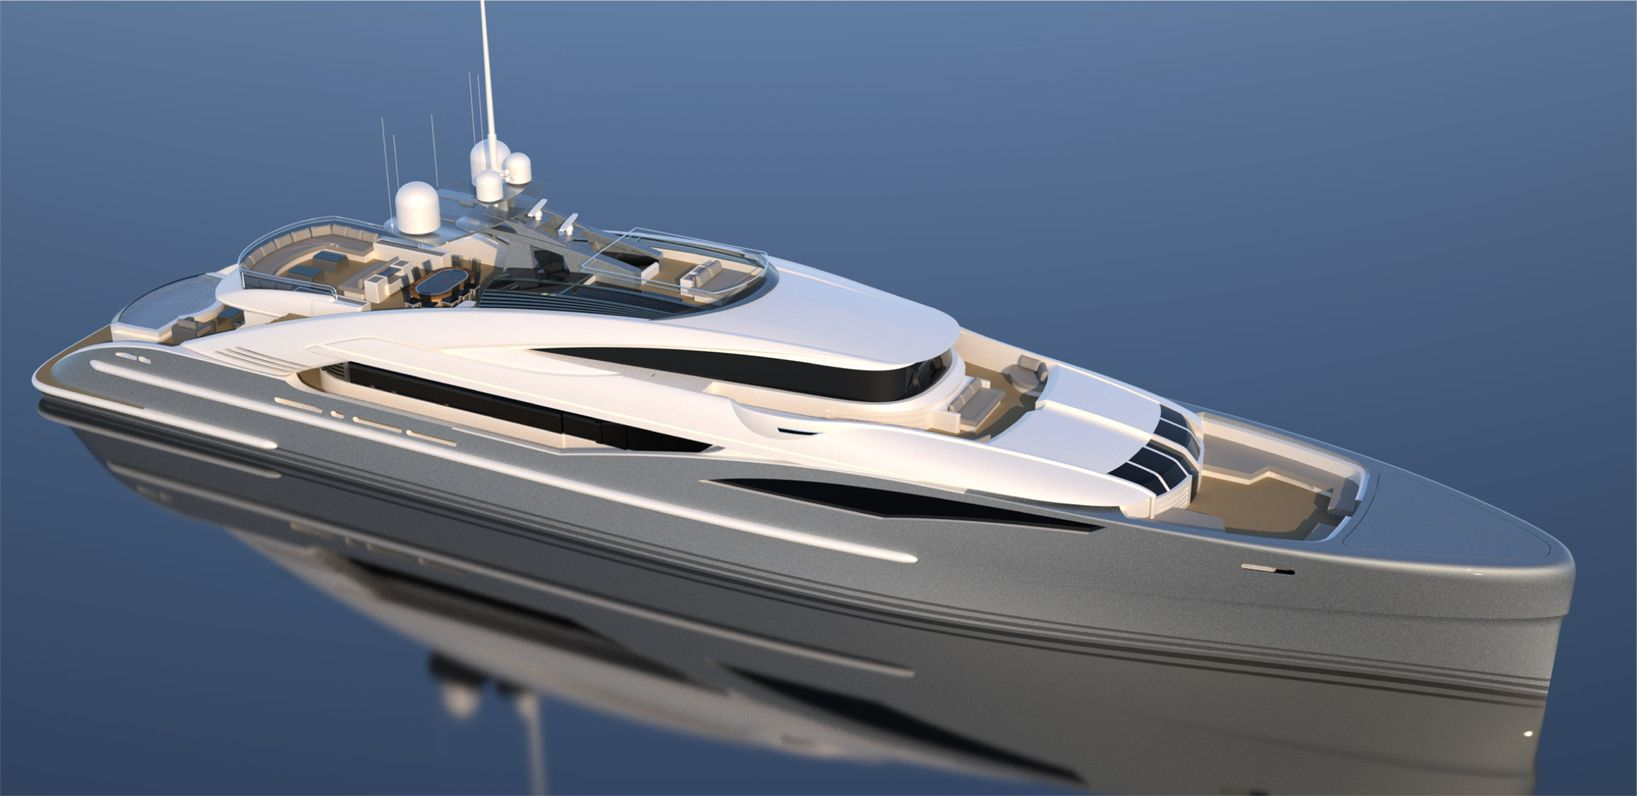 50 Meter Yacht for Sale - Granturismo Isa Yachts   Yachts 40